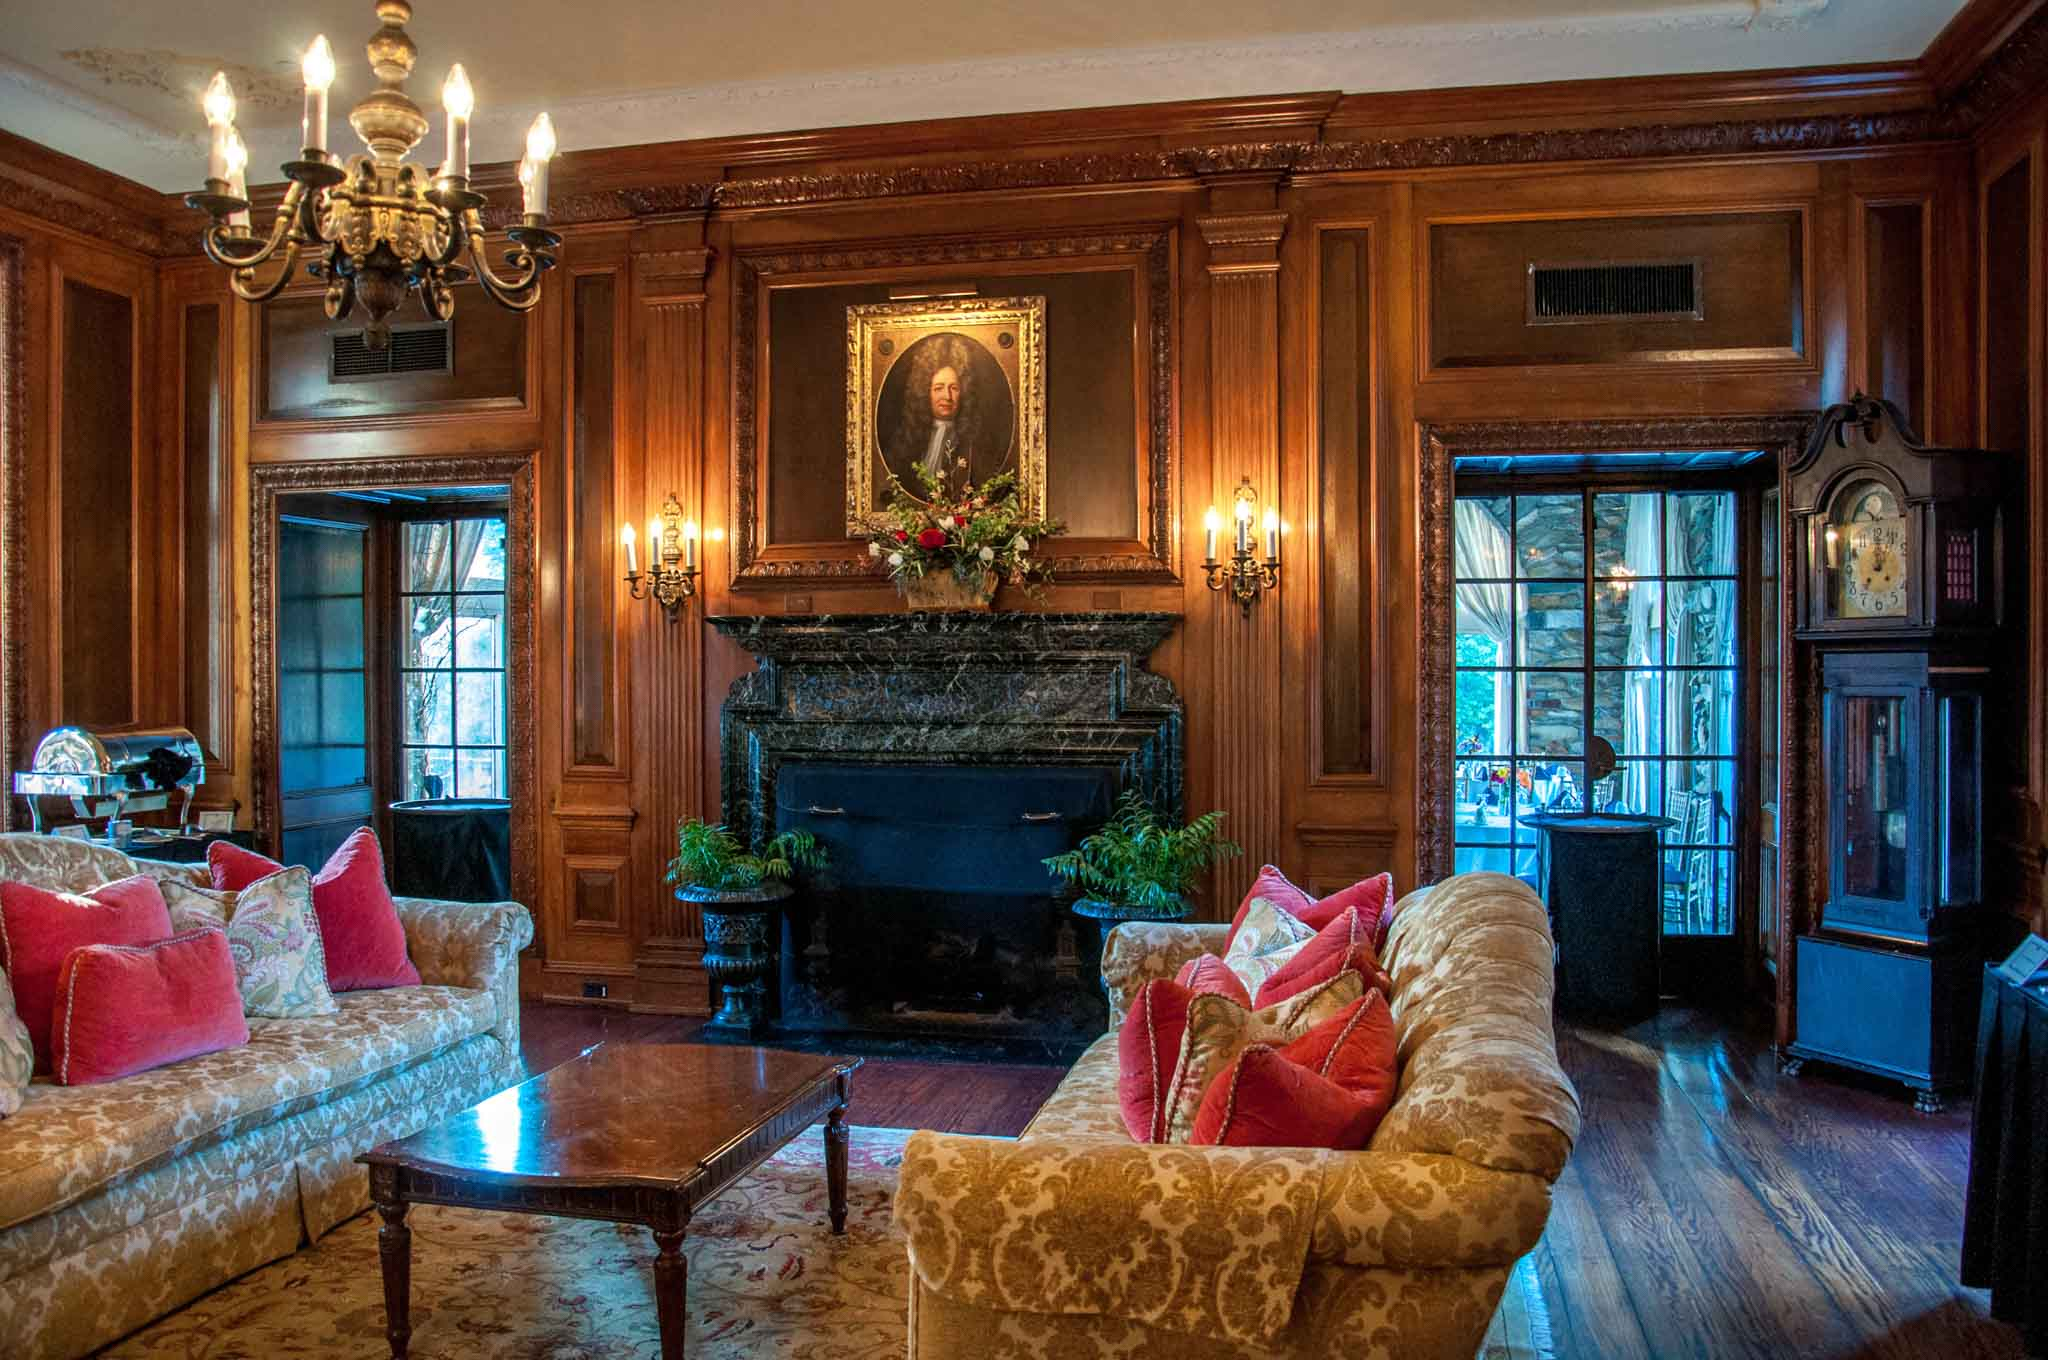 Room with brocade couches and marble fireplace at Graylyn Estate